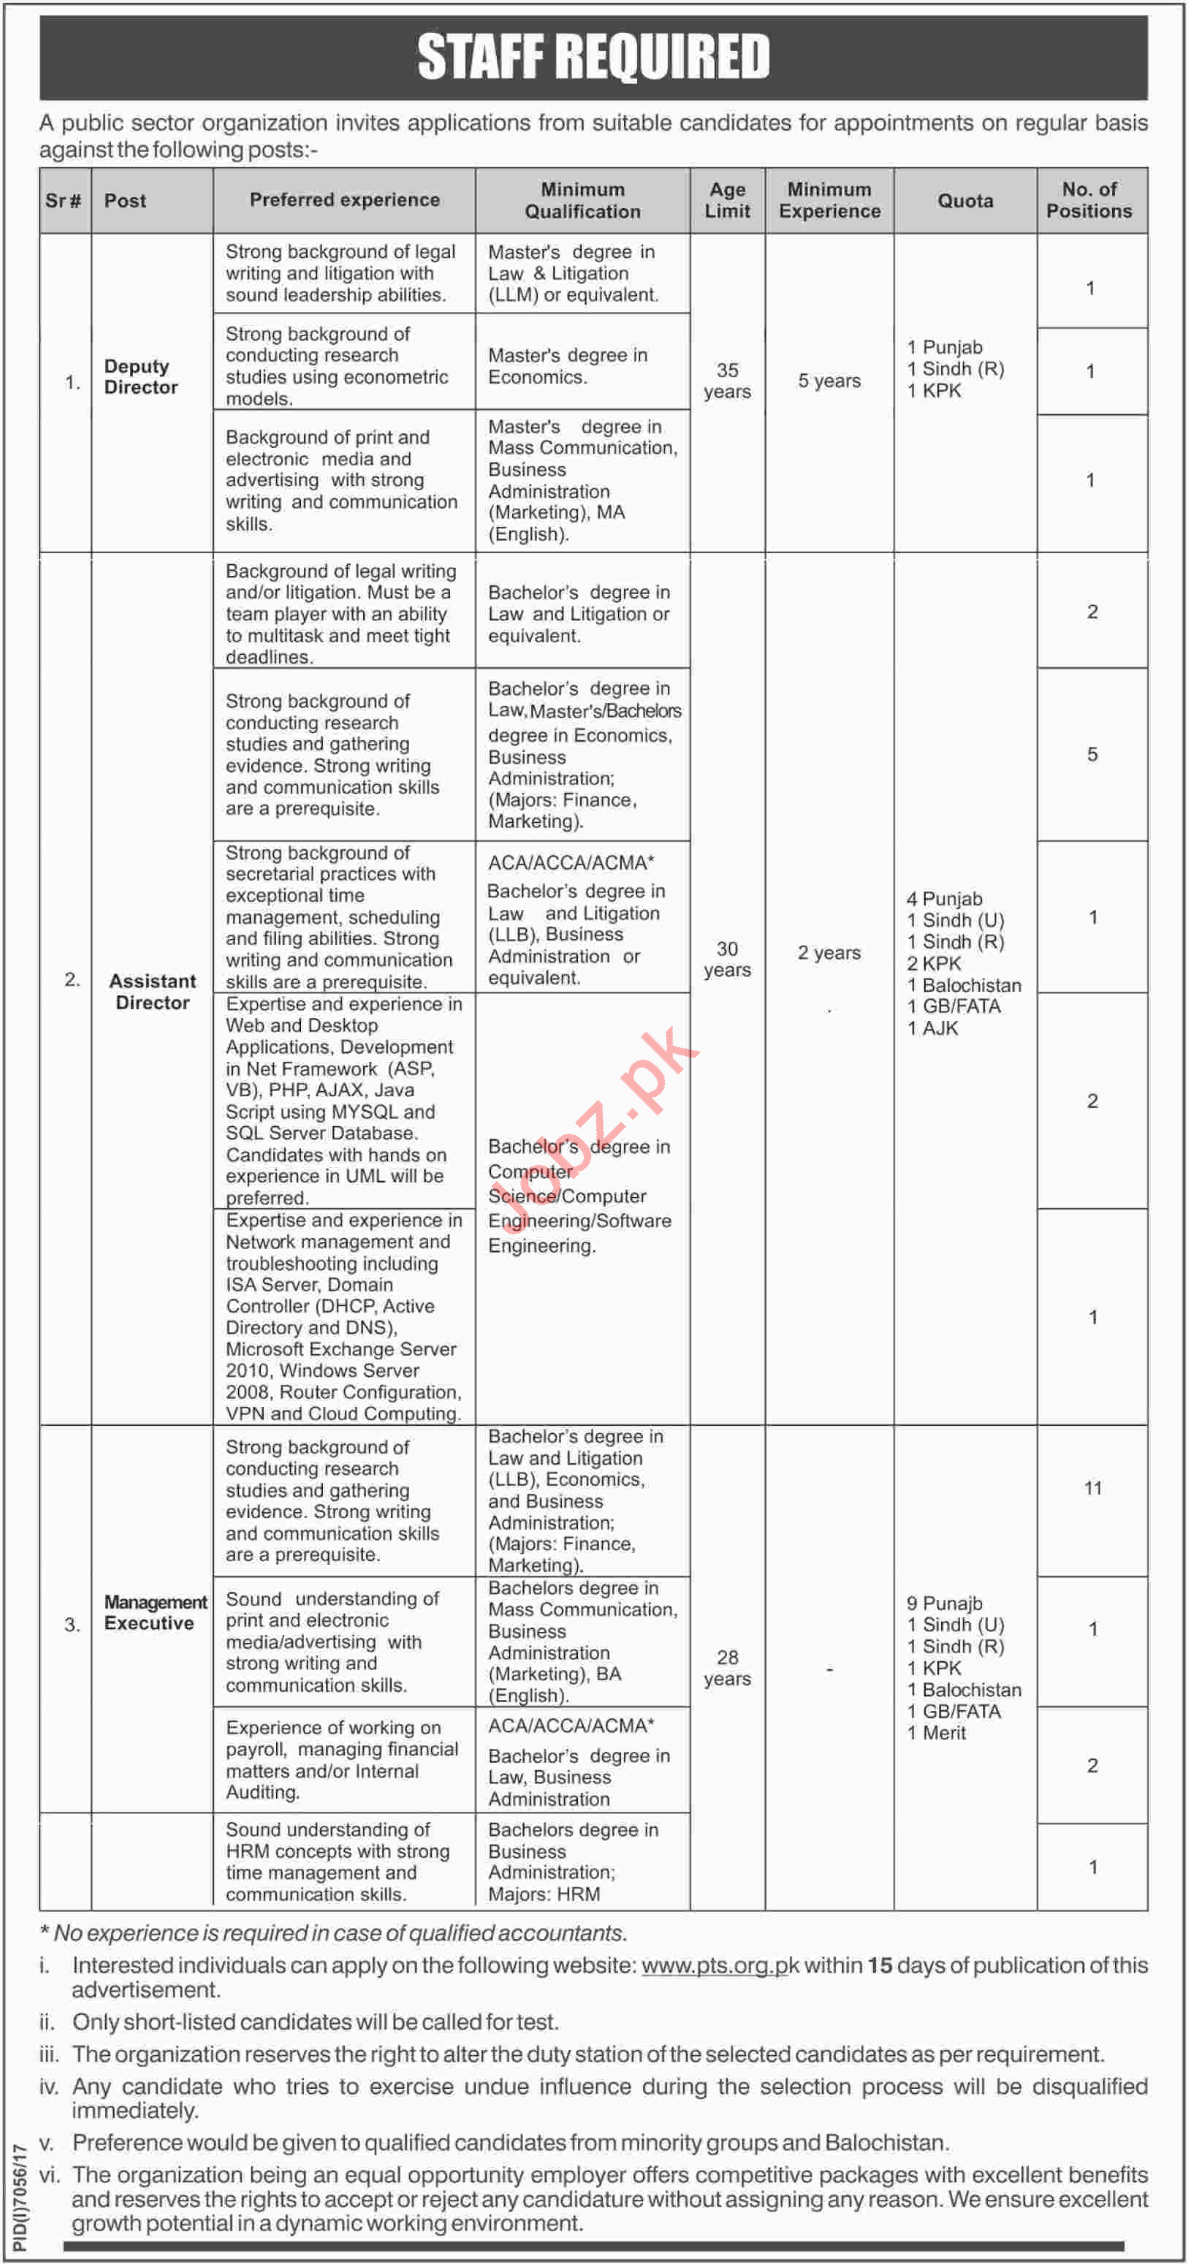 Public Sector Organization Karachi Jobs 2018 for Directors